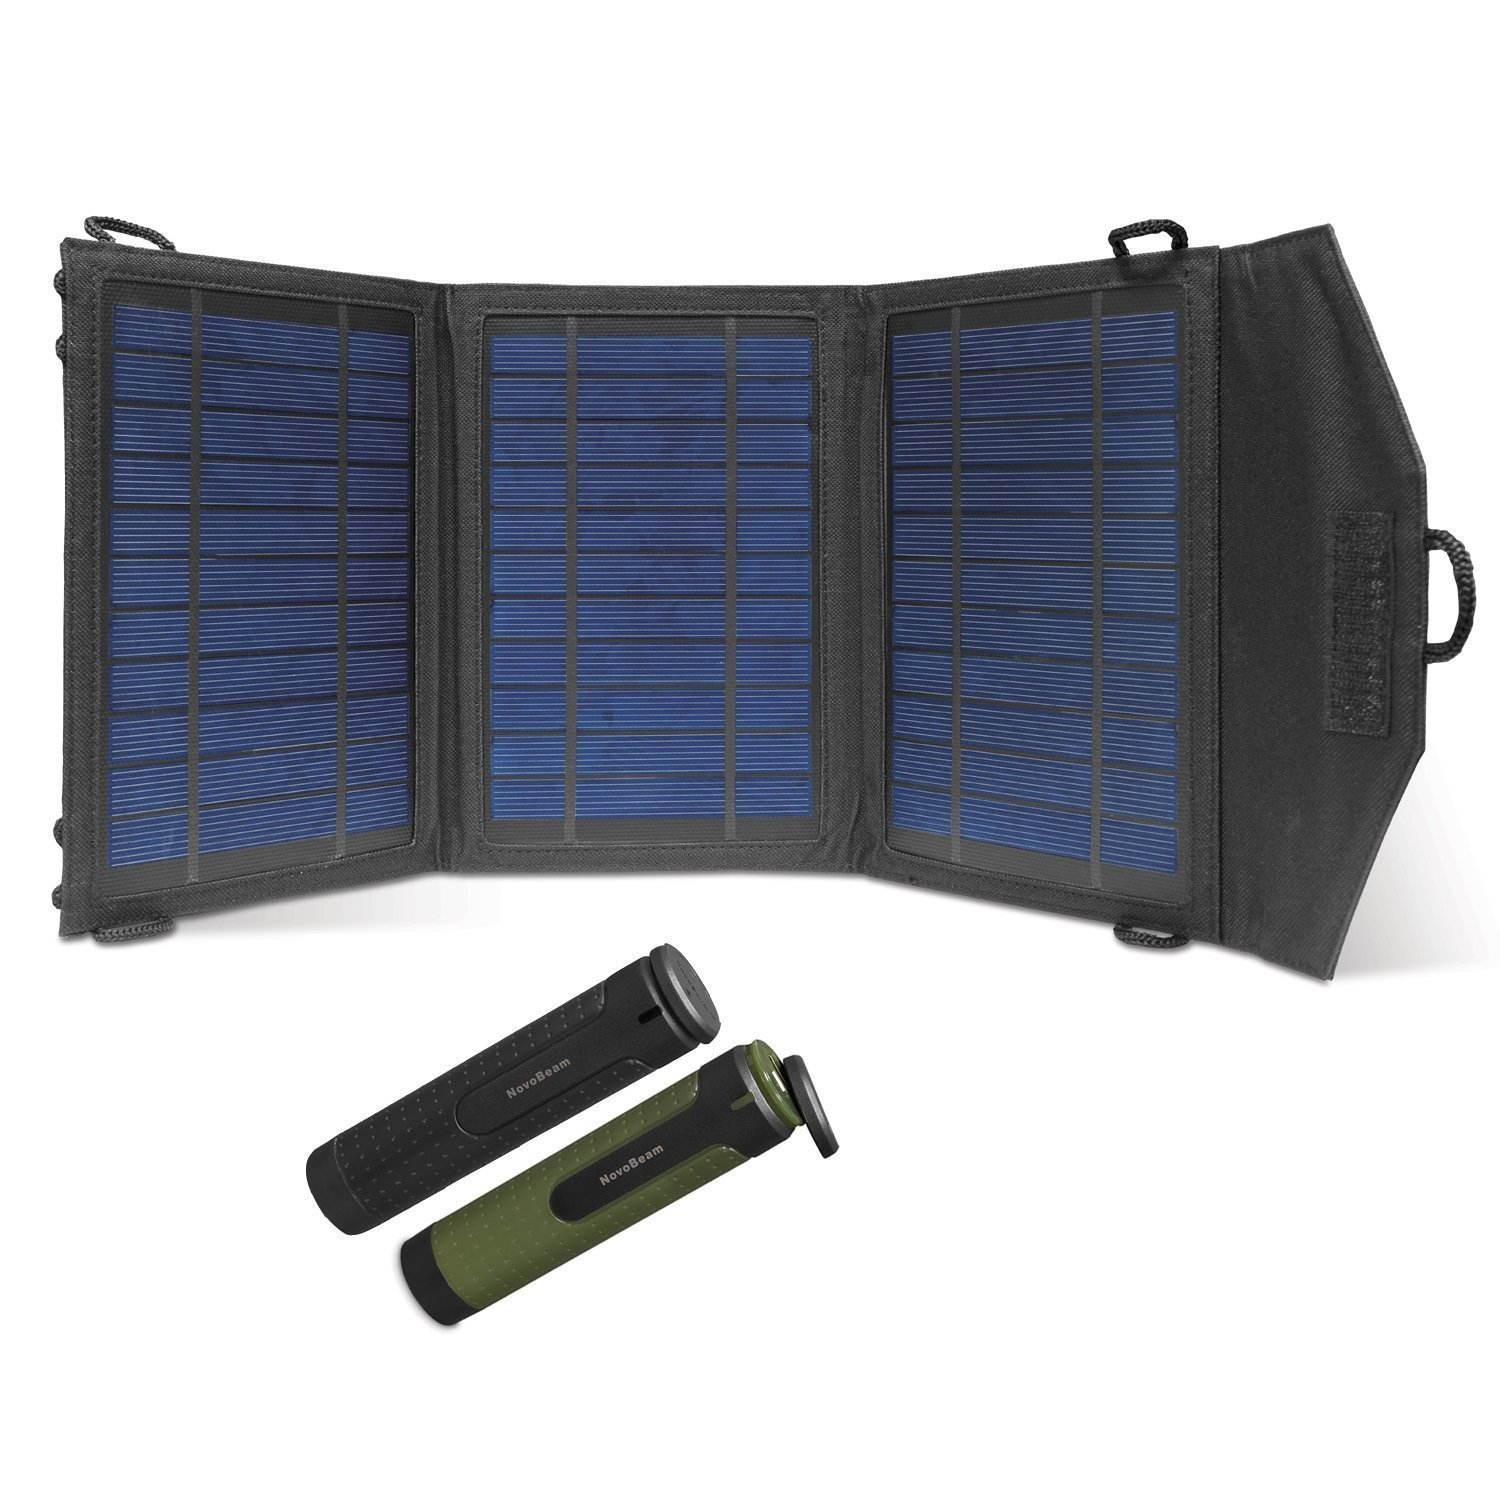 Instapark 10 Watts Solar Panel Portable Solar Charger with Dual USB Ports for iPhone, iPad & all other USB Compatible Devices, Two 3000 mAh Novobeam Battery Packs Included …